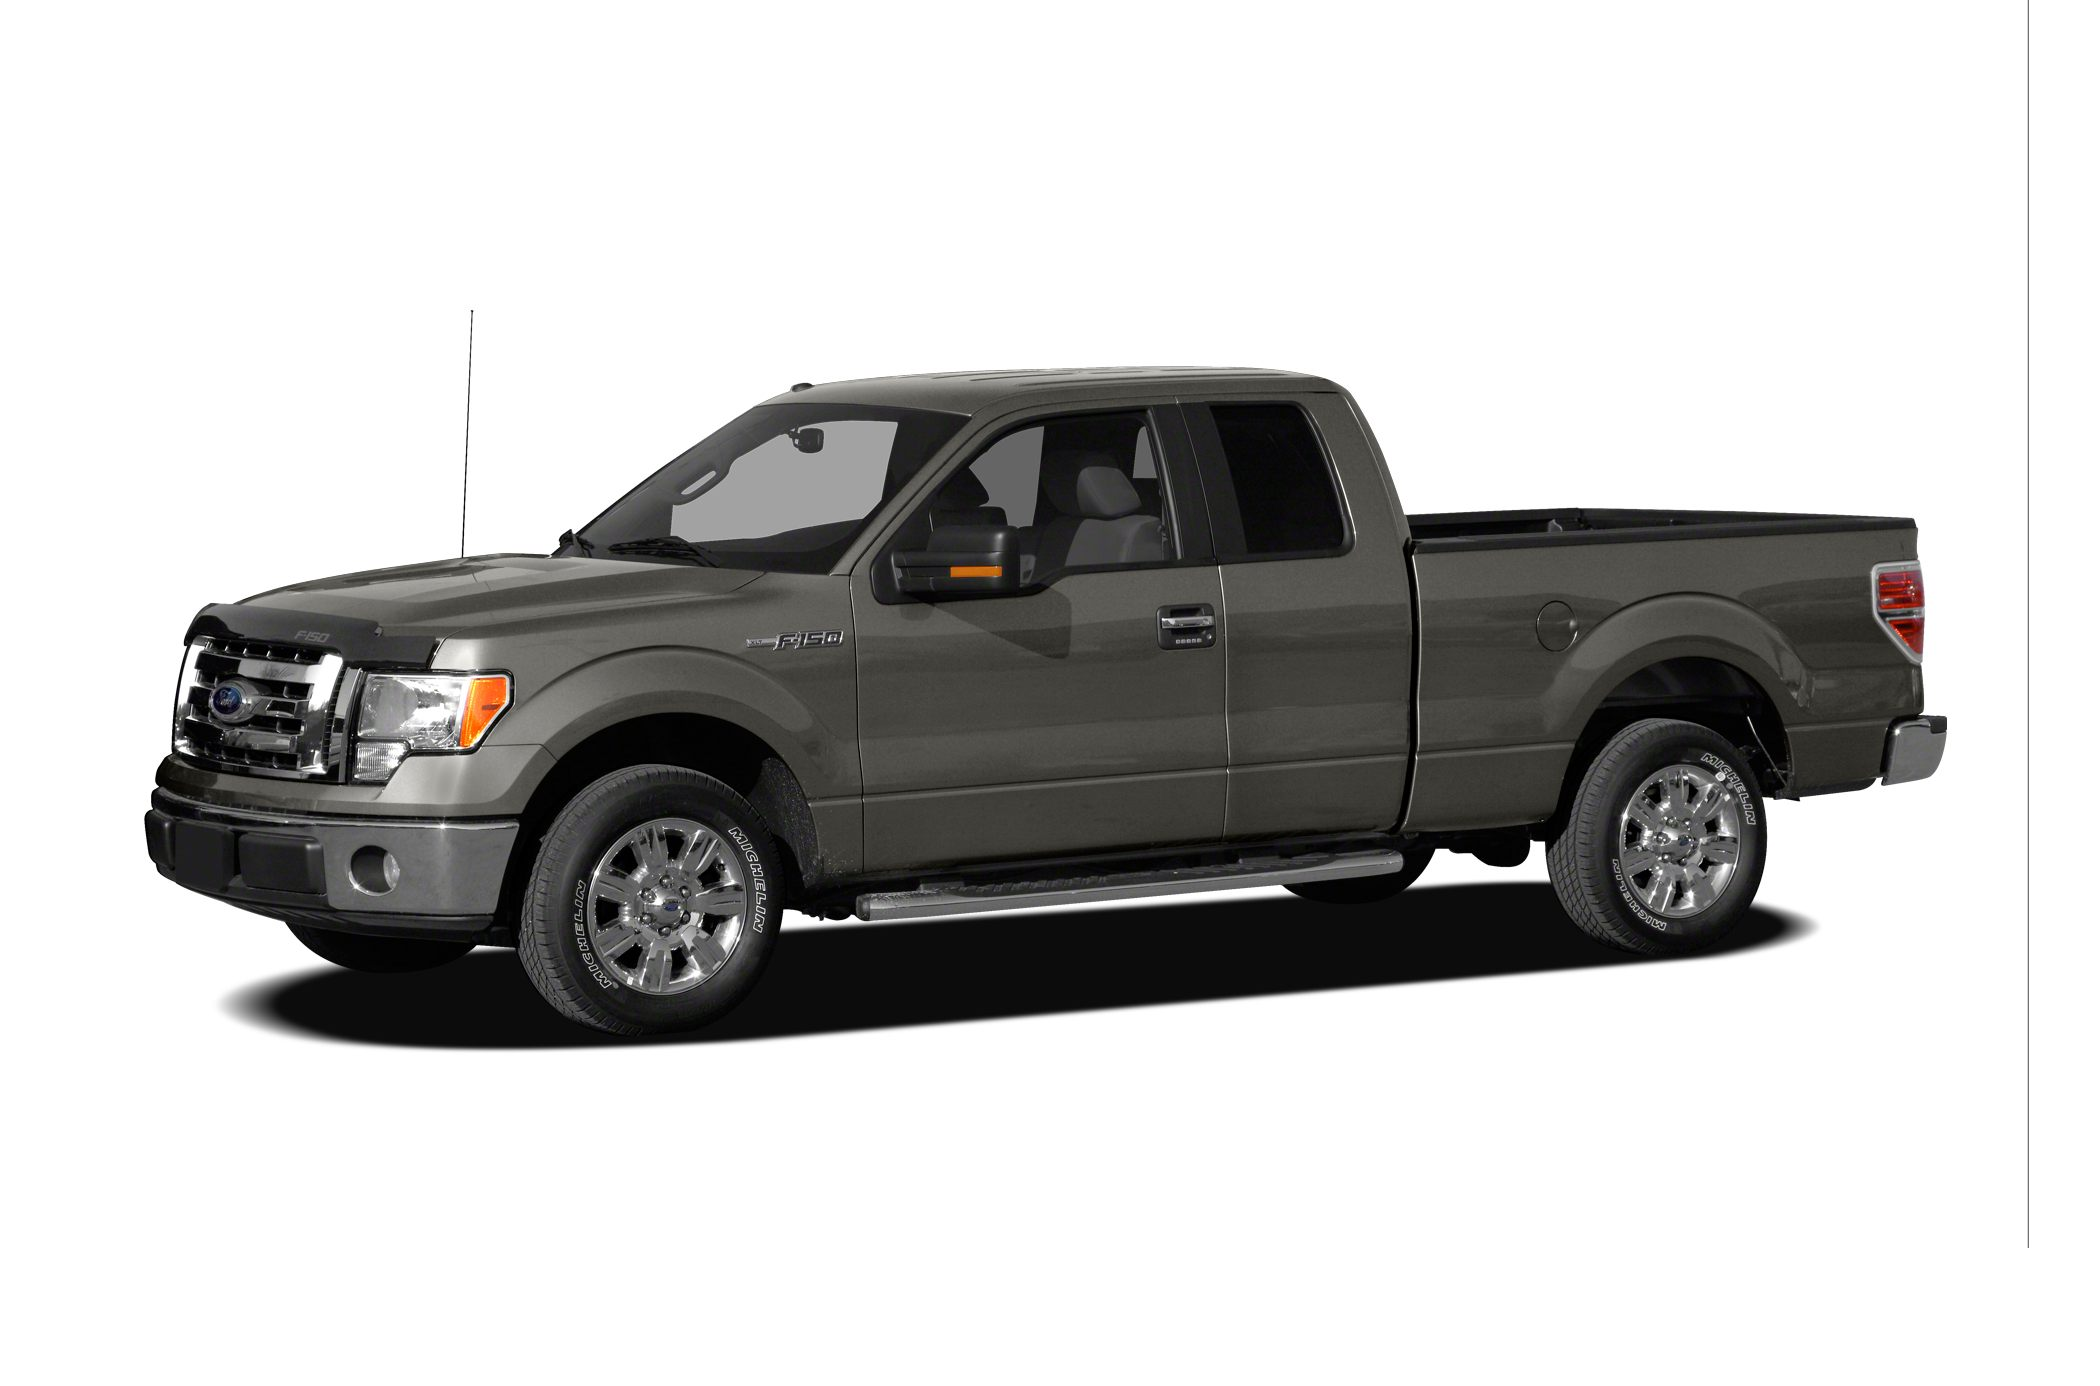 2011 Ford F150 Lariat Crew Cab Pickup for sale in kansas City for $27,500 with 80,382 miles.